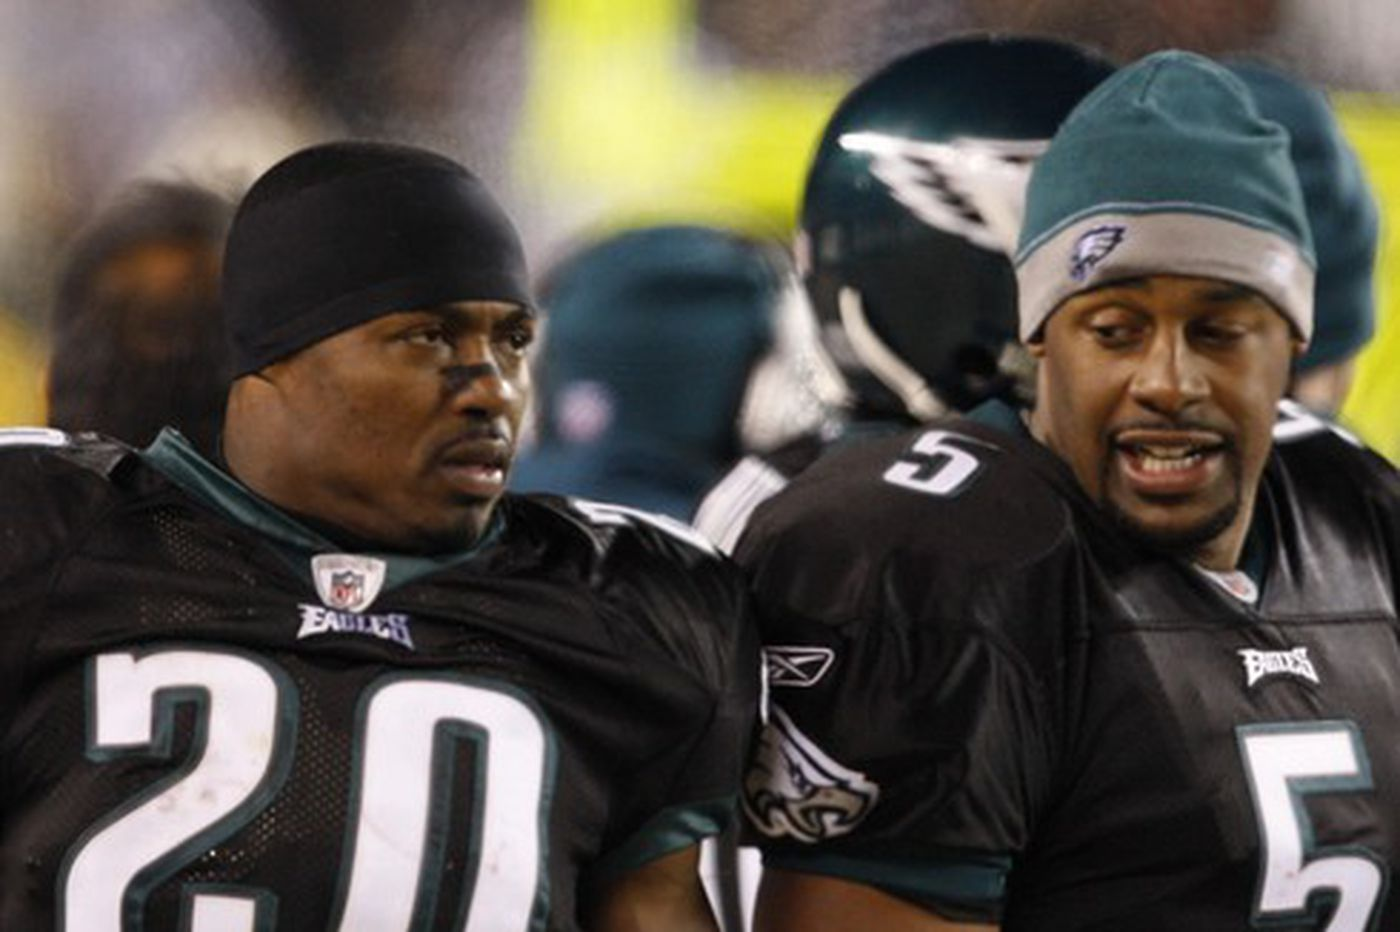 Eagles - With Bengals game still stinging, Eagles won't take Browns lightly